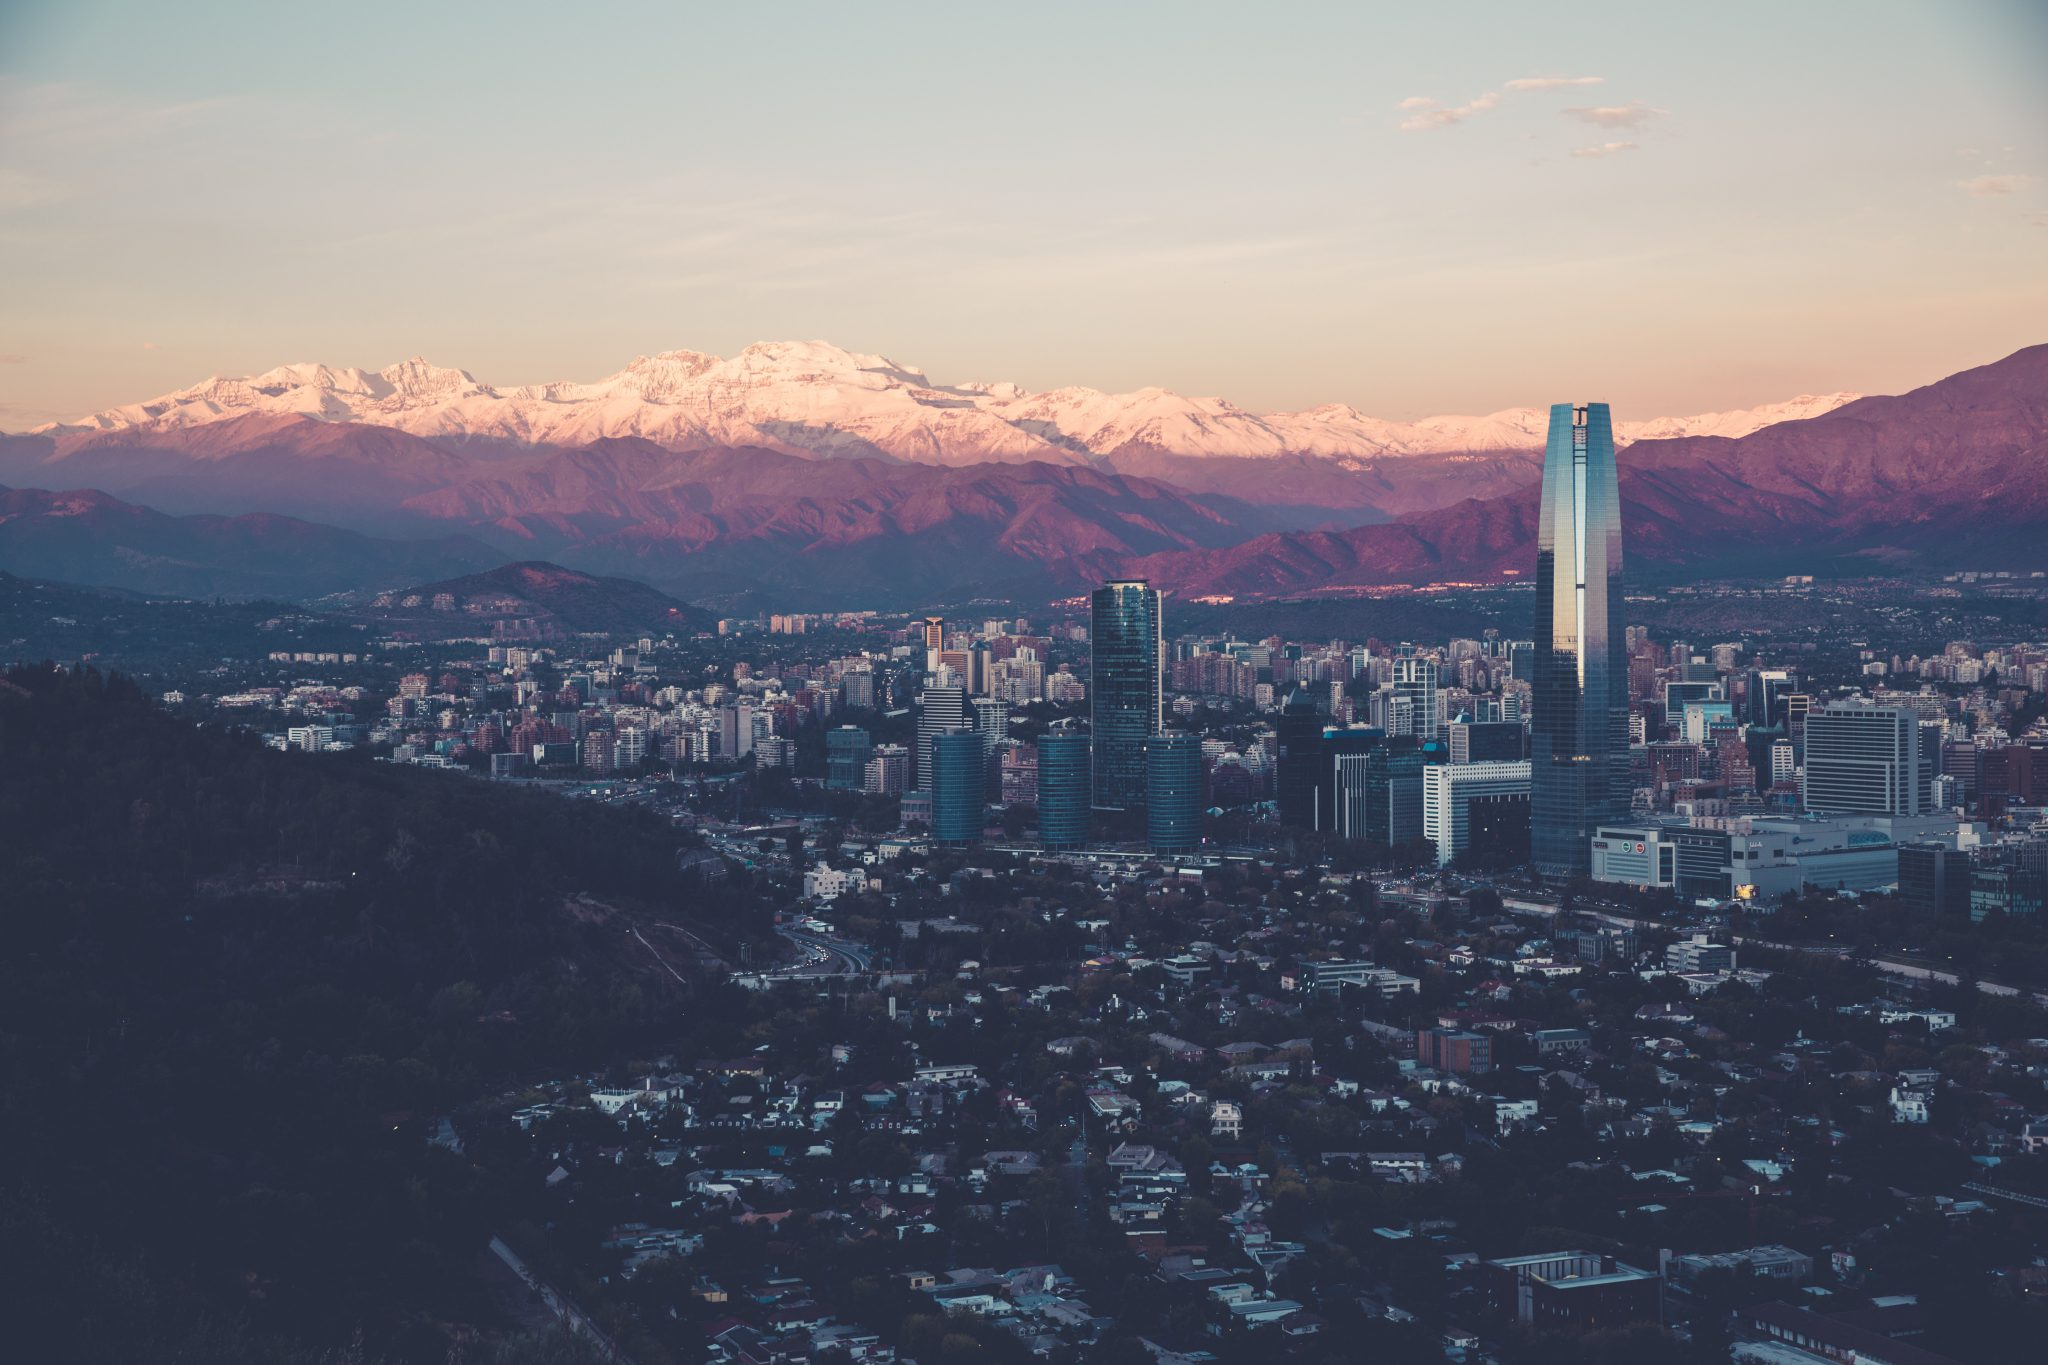 overview shot of santiago, chile with mountains in background